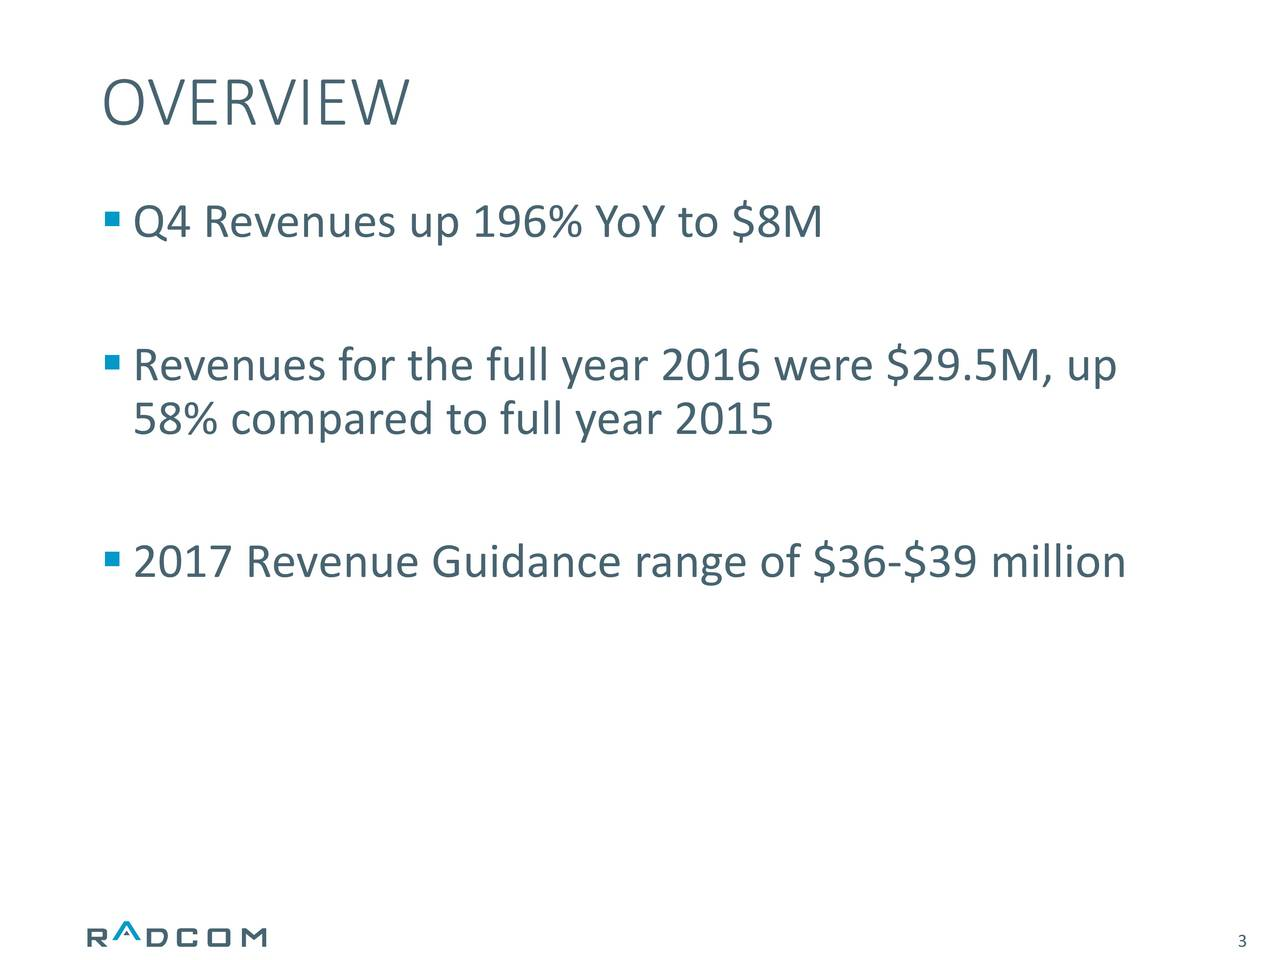 Q4 Revenues up 196% YoY to $8M Revenues for the full year 2016 were $29.5M, up 58% compared to full year 2015 2017 Revenue Guidance range of $36-$39 million